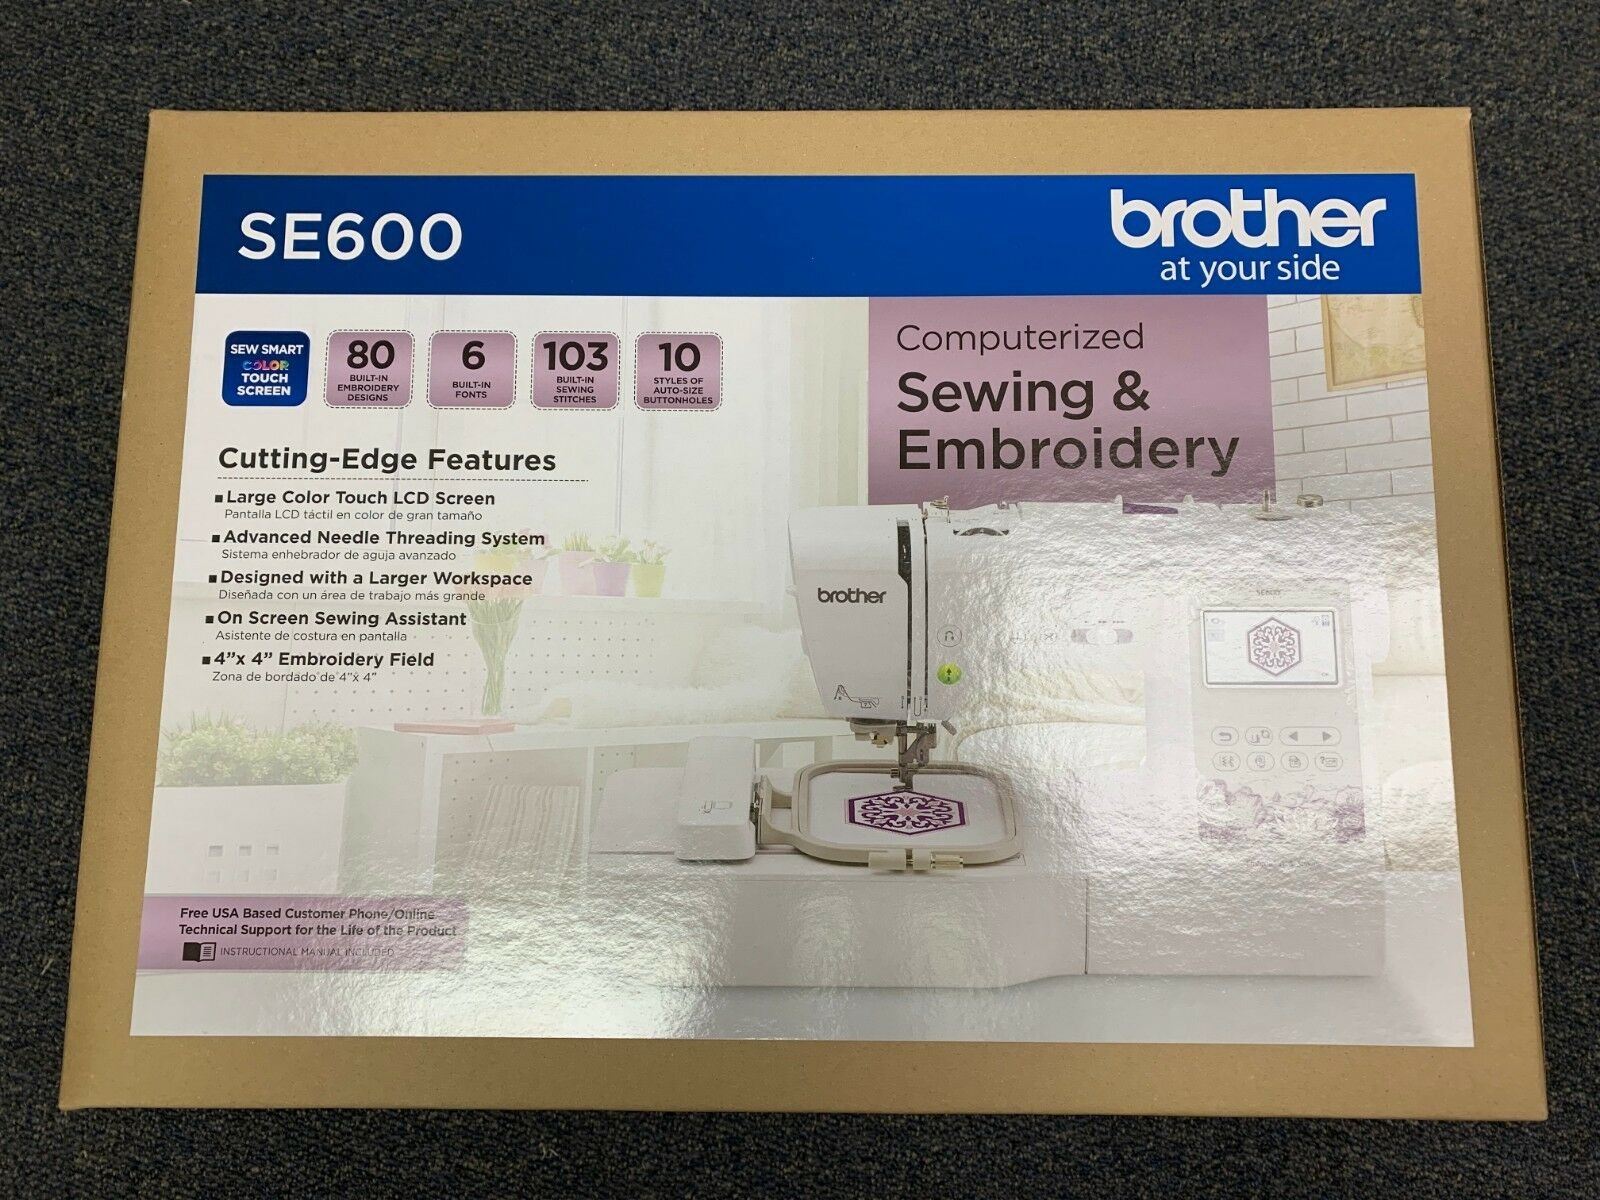 Brother Sewing Machine - SE600 - Computerized Sewing & Embro